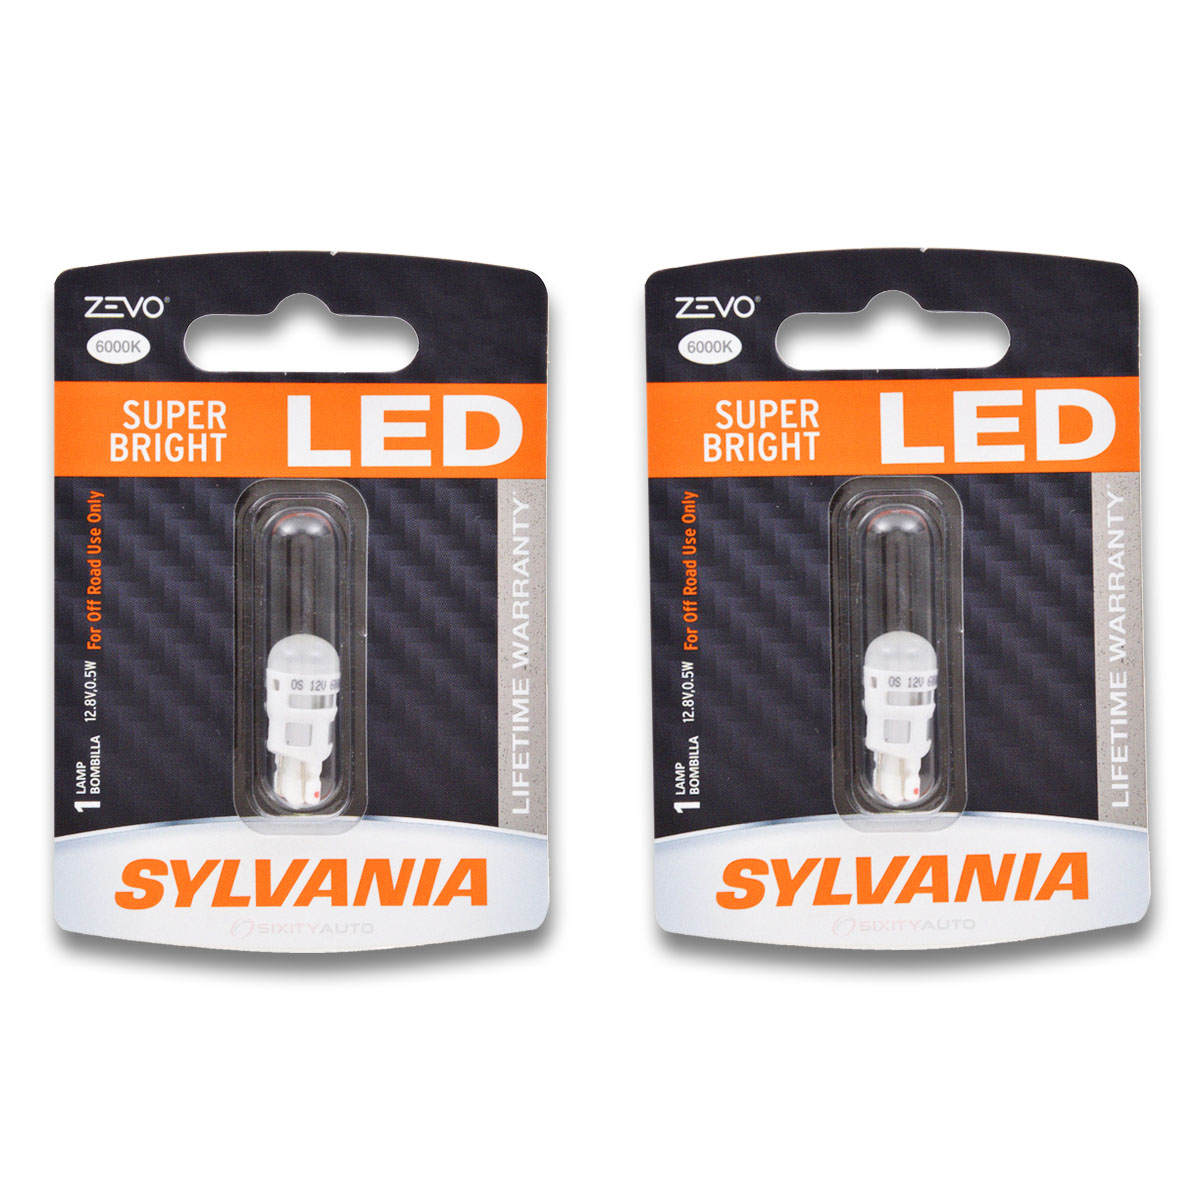 sylvania zevo led interior and exterior lights allow for easy replacement of dingy yellow bulbs with a brighter whiter sharper light source - Sylvania Light Bulbs